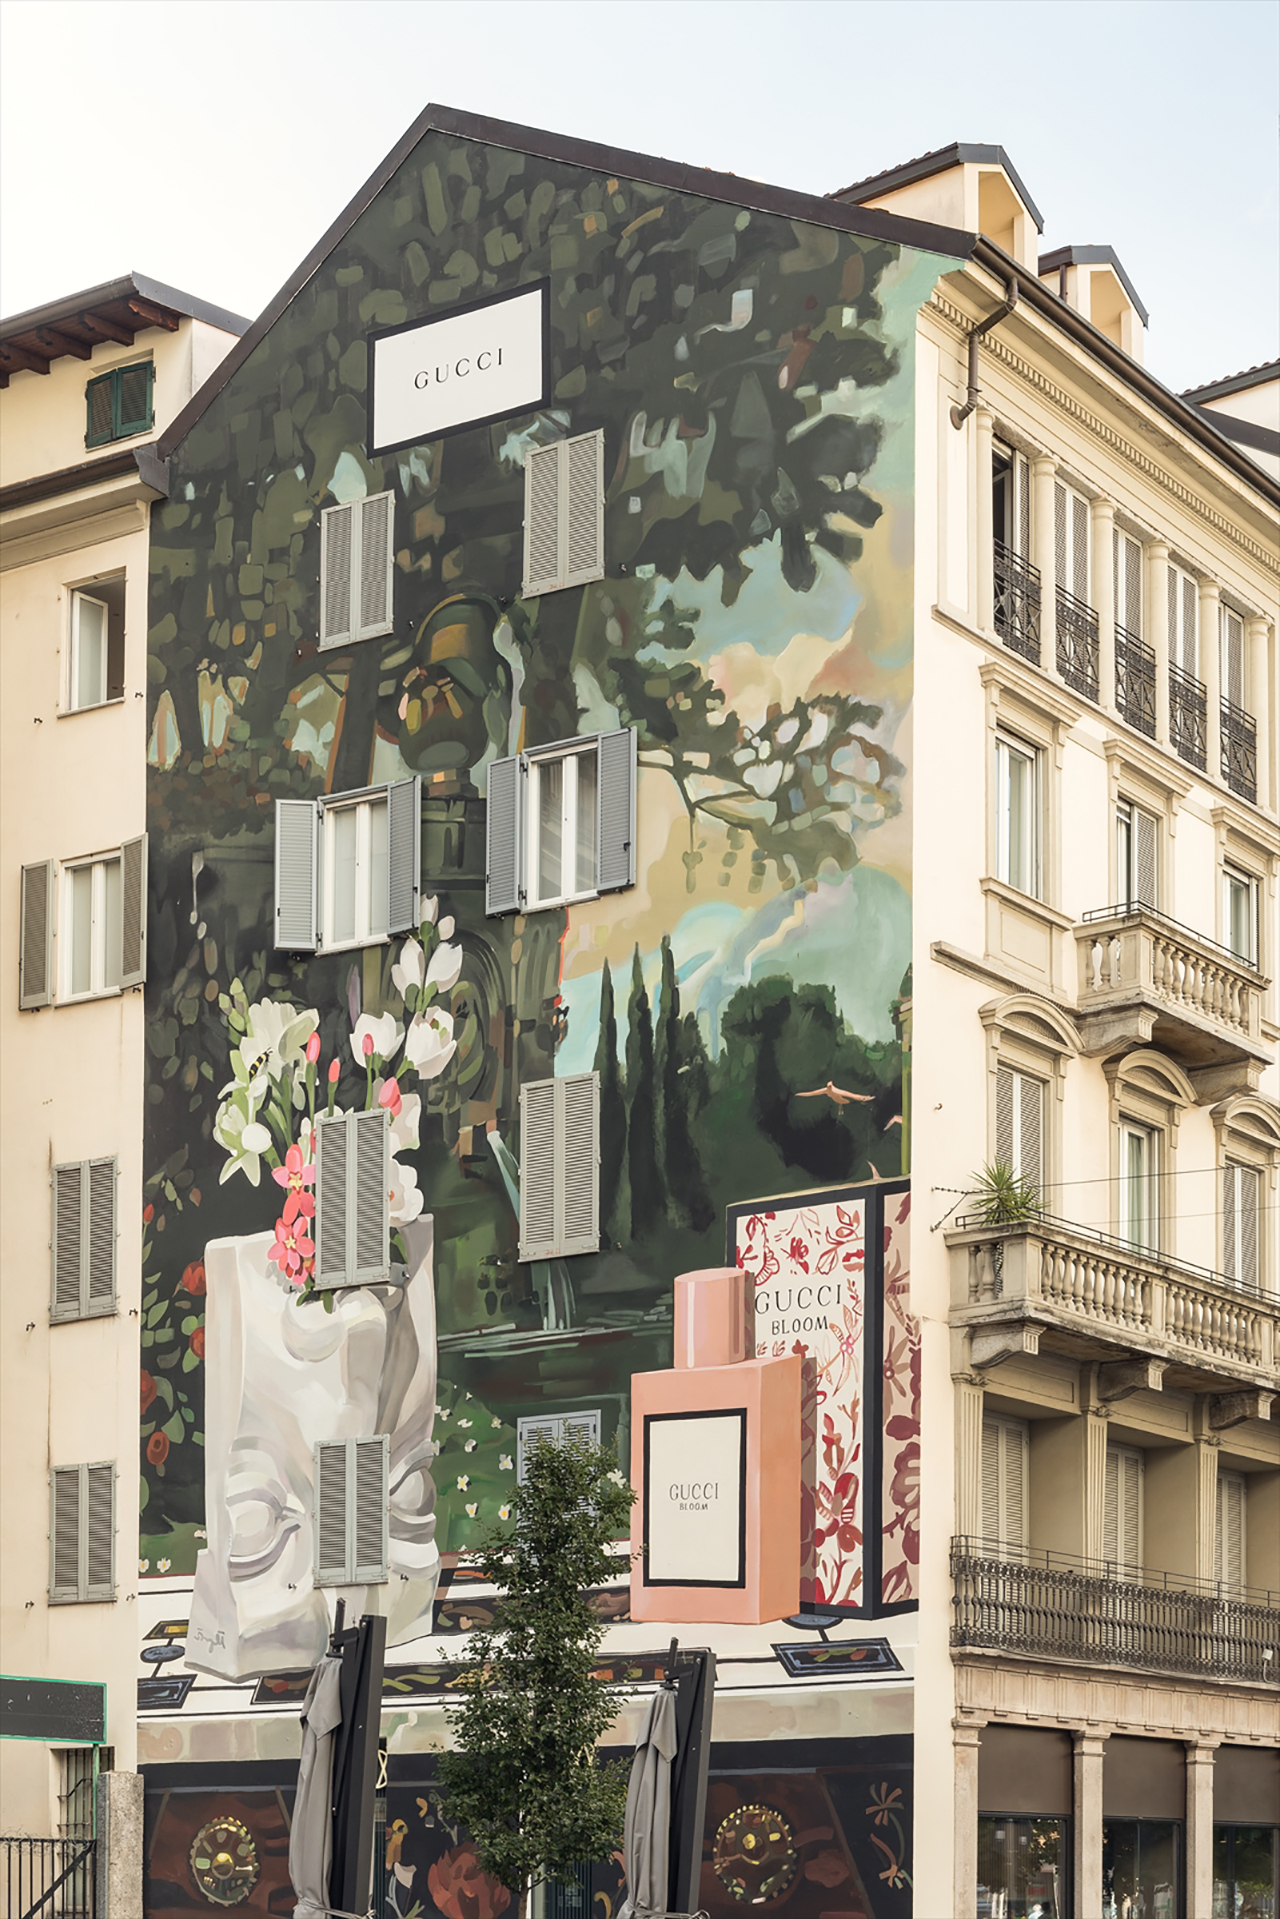 Milan Wall Courtesy of Delfino Sisto Legnani | ©︎ Gucci